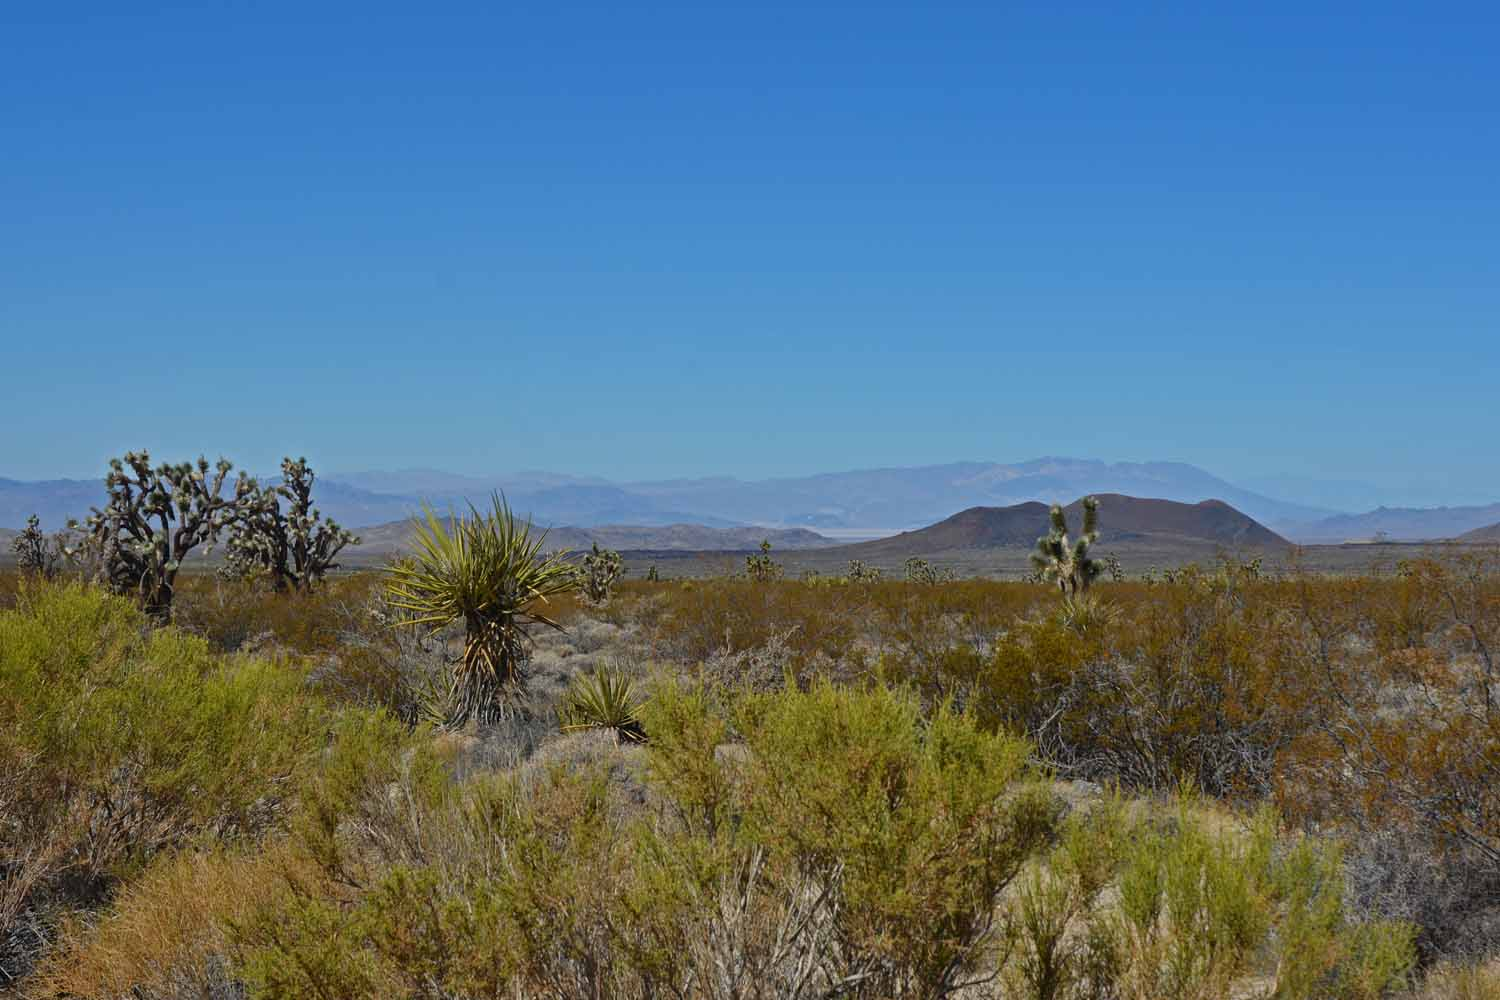 Mojave has mountains too.  Typical shot of the landscape.